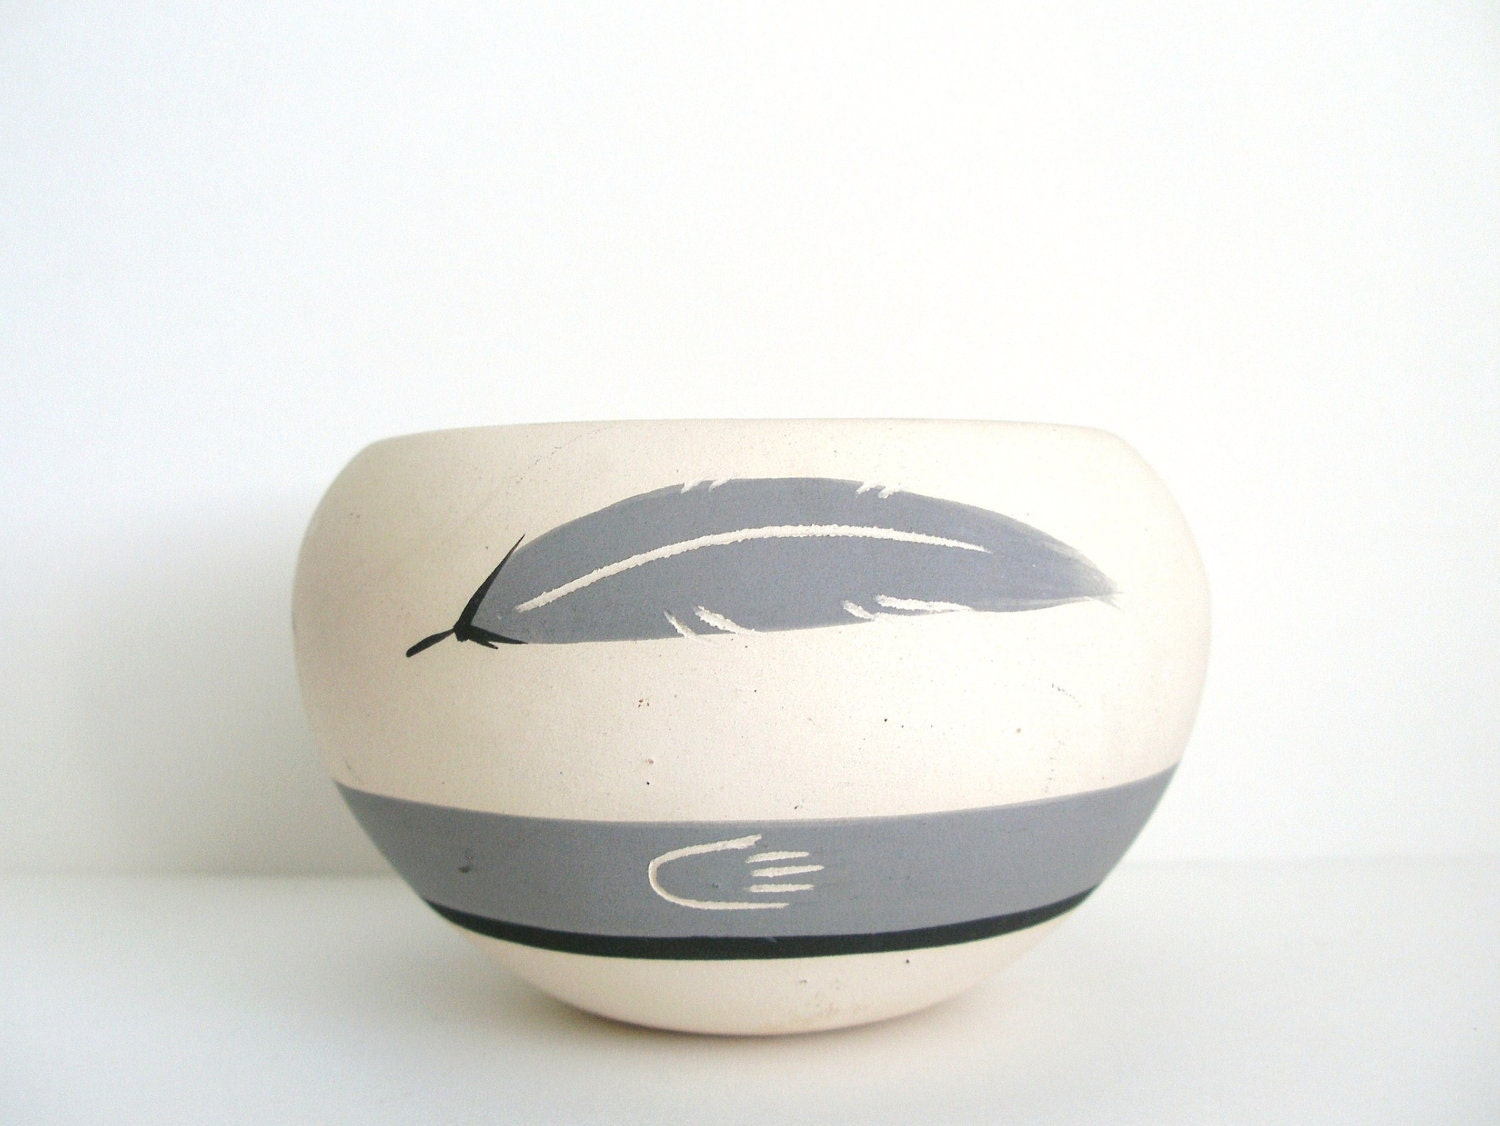 Grey Three Feather Ceramic Bowl Vase Native American Southwest Style - VintageZen